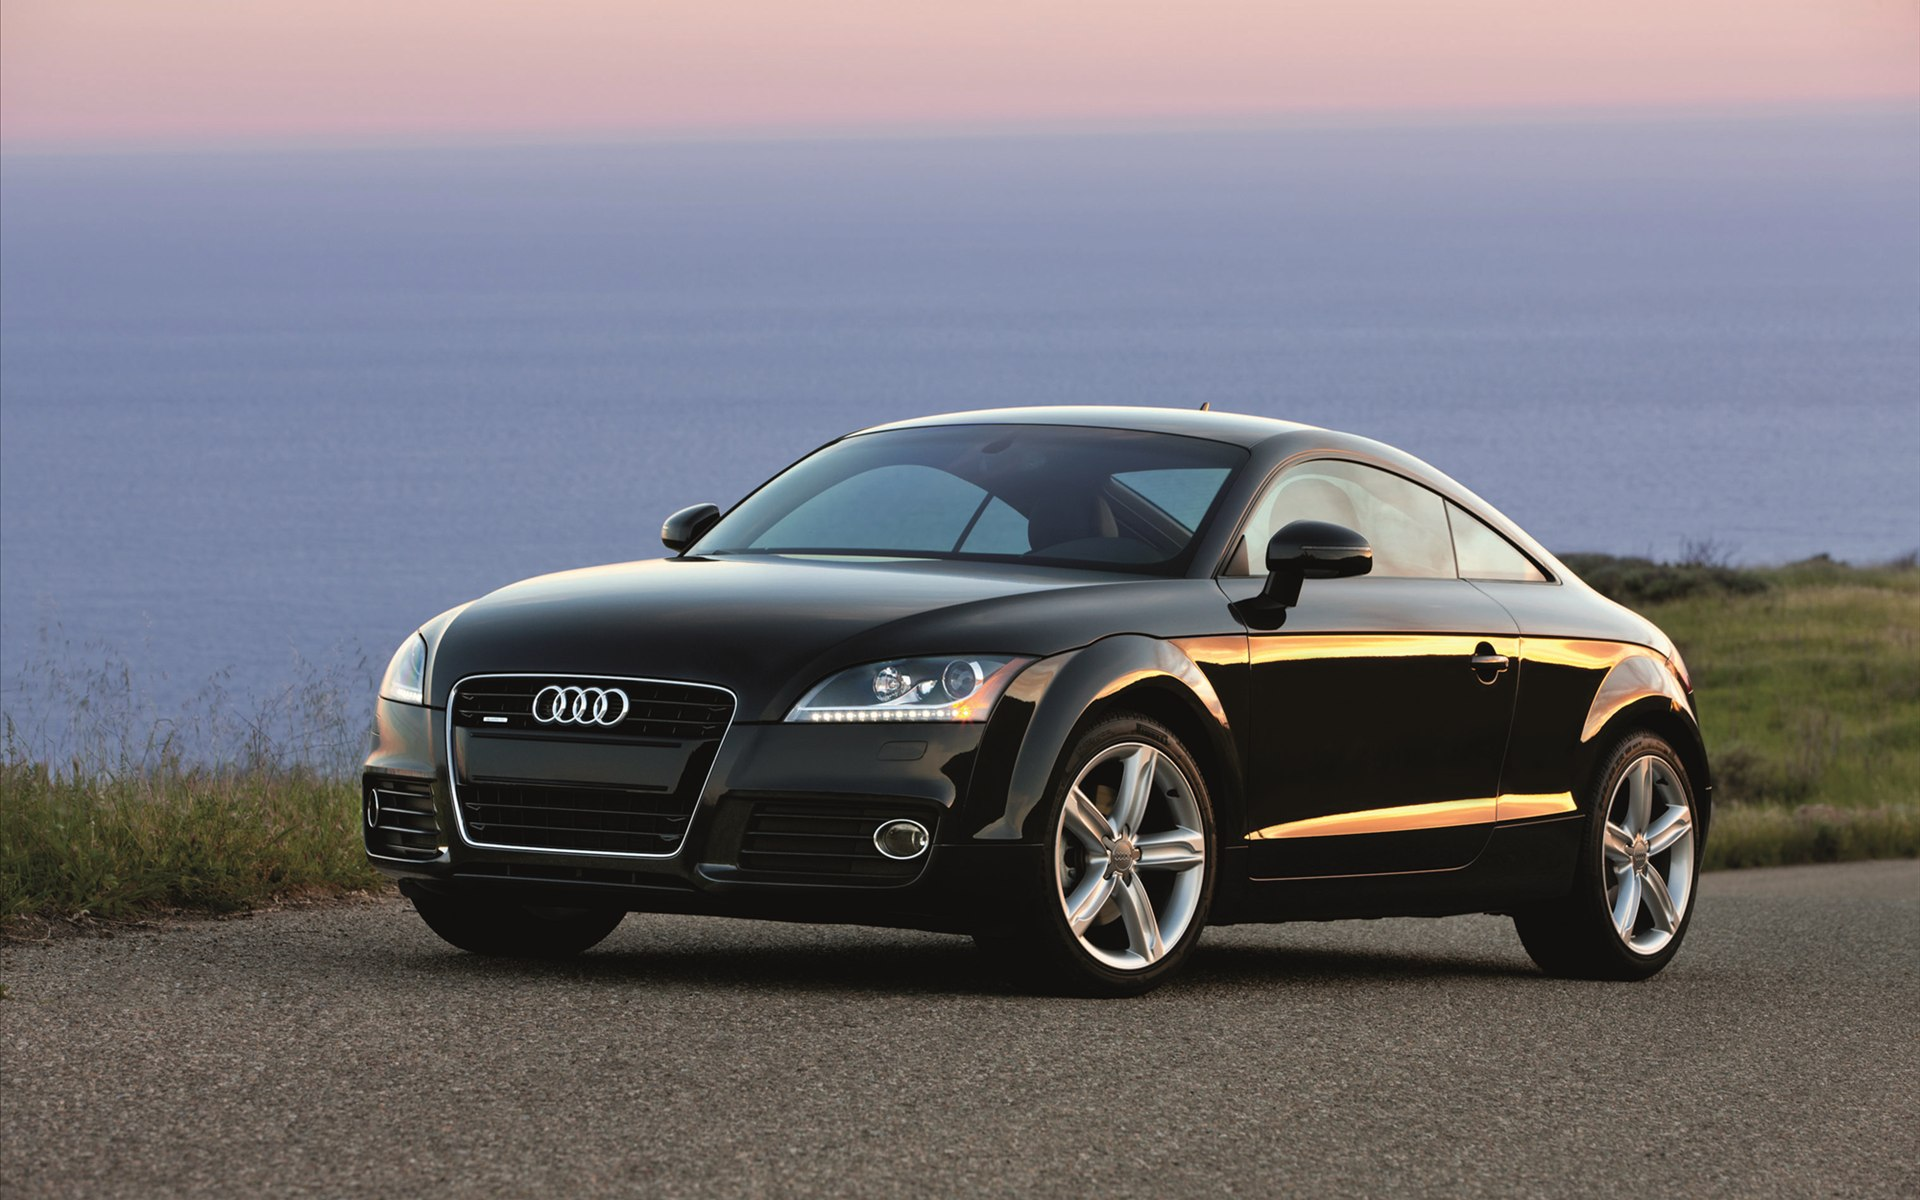 Audi coupe photo - 3